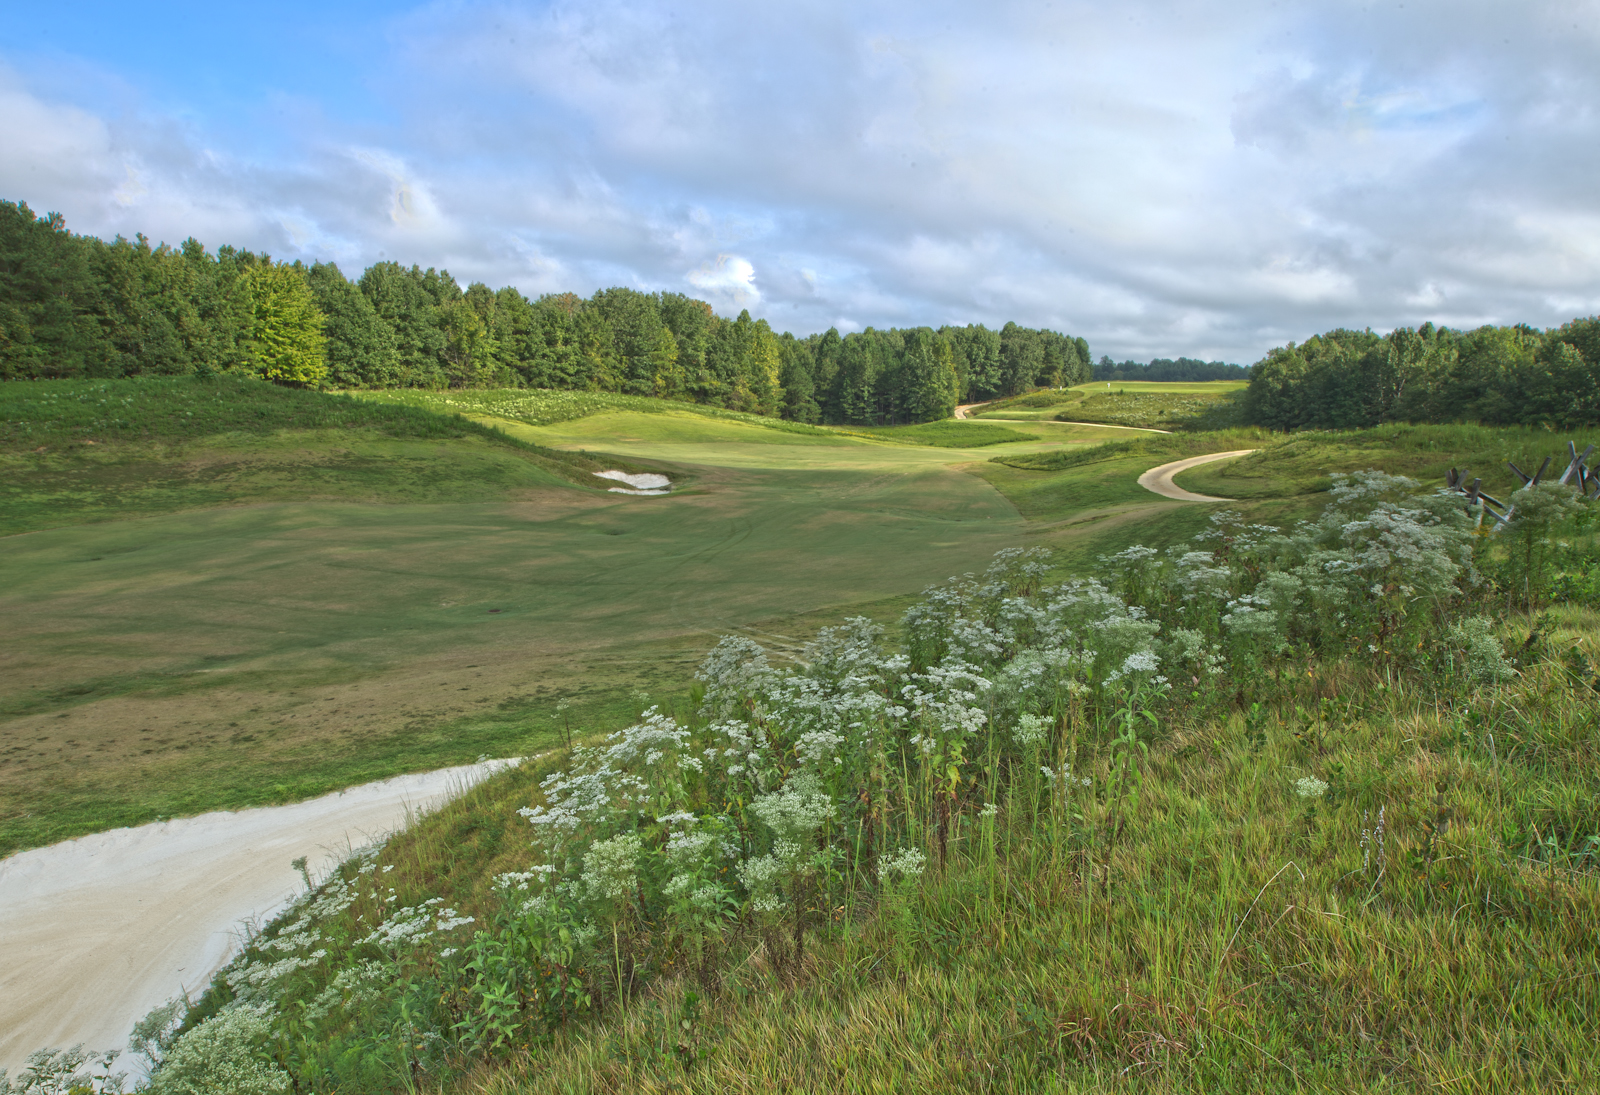 Royal_New_Kent_Gof_Club-Course_by_Terri_Aigner-26-of-74